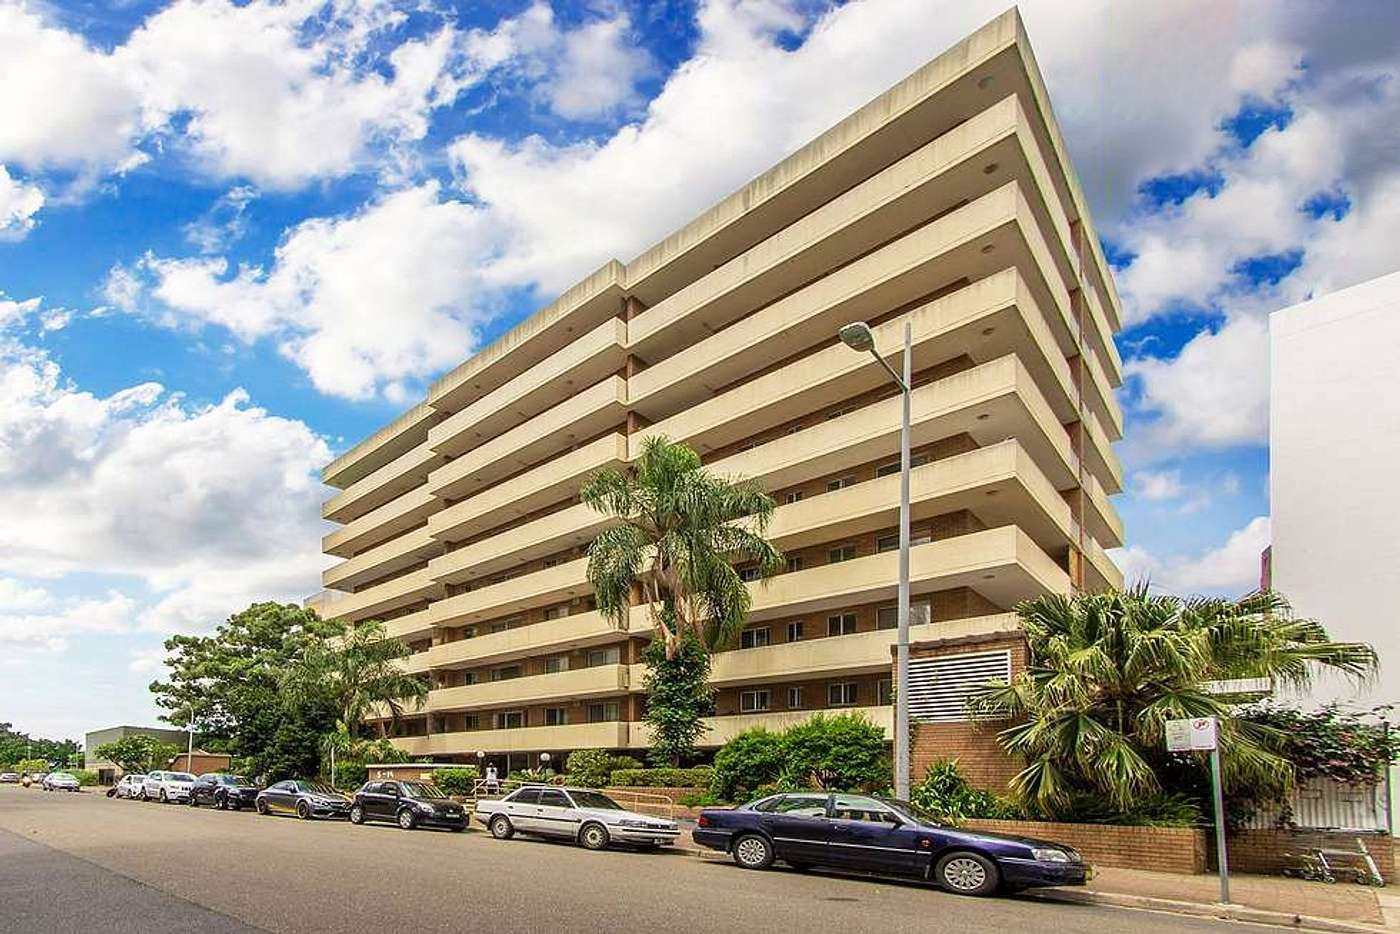 Main view of Homely apartment listing, 16/5-15 Union Street, Parramatta NSW 2150